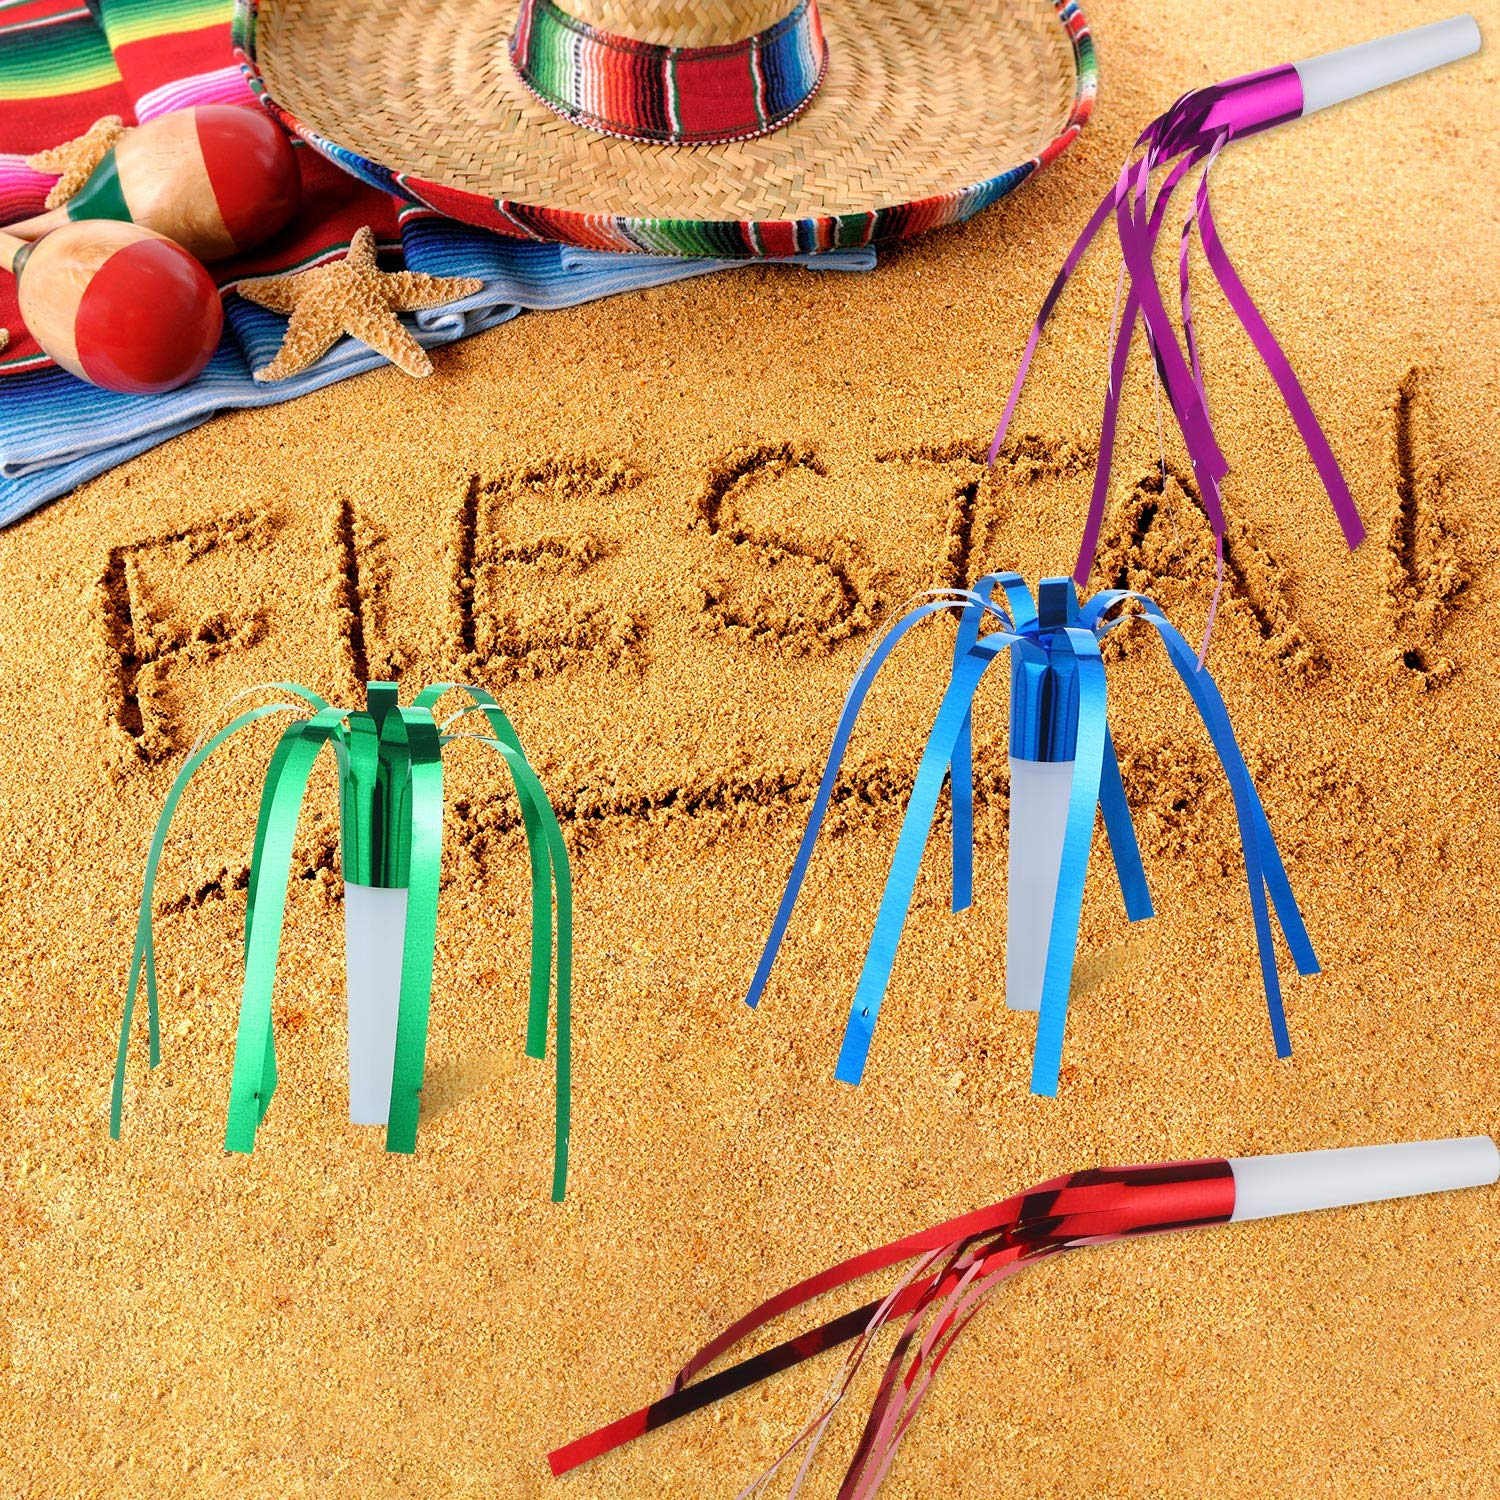 Gejoy 36 Pieces Party Whistle Fiesta Party Blowers Metallic Noisemakers Glitter Fringed Colorful Noise Maker for Mexican Fiesta Party Supplies